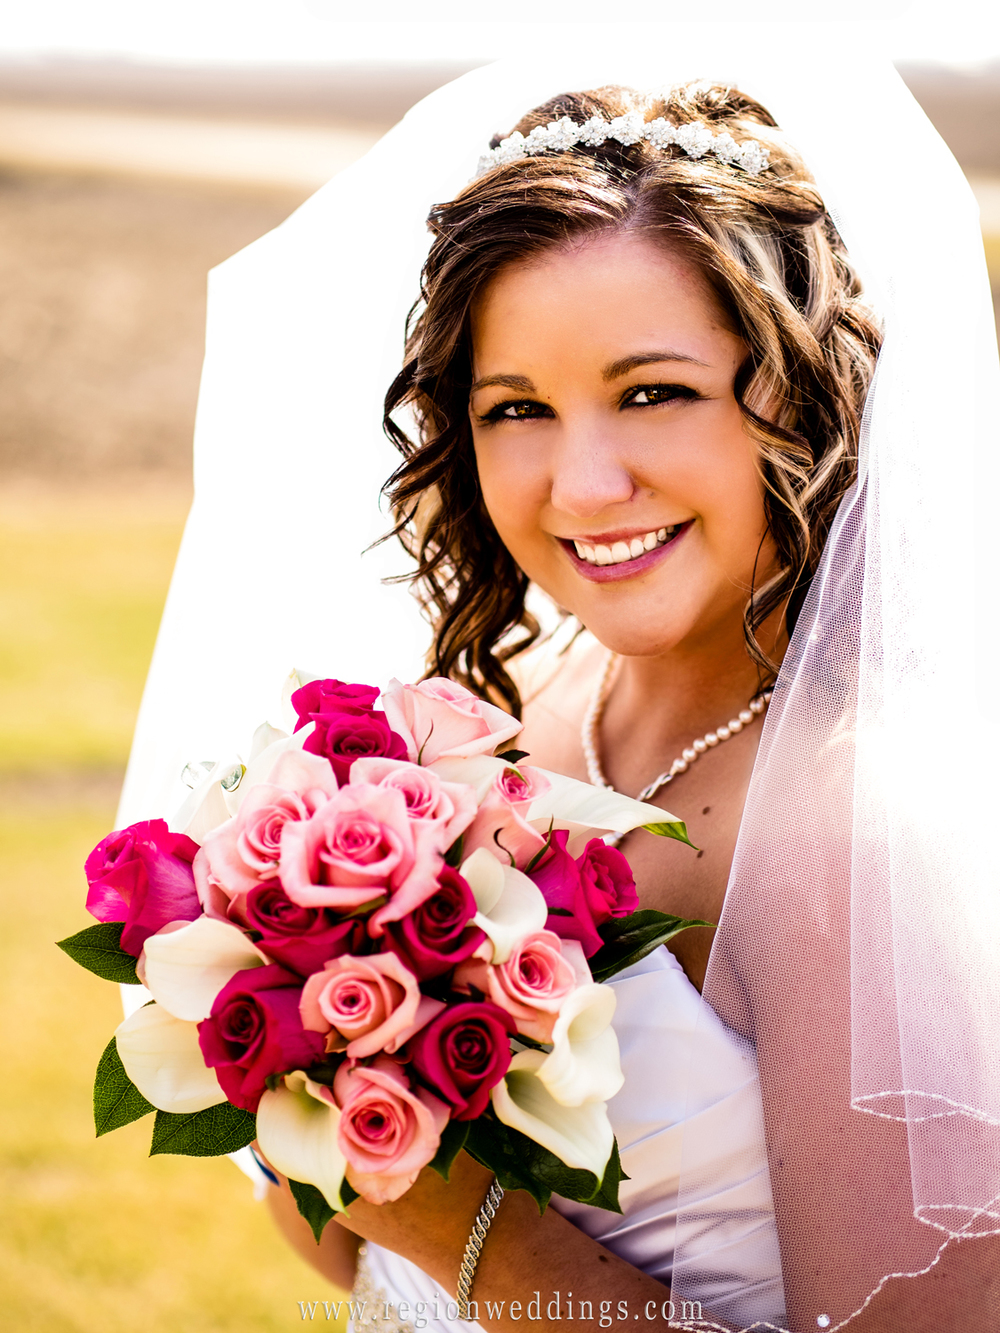 An outdoor wedding portrait of a bride before her Spring wedding holding her pink bouquet of flowers.